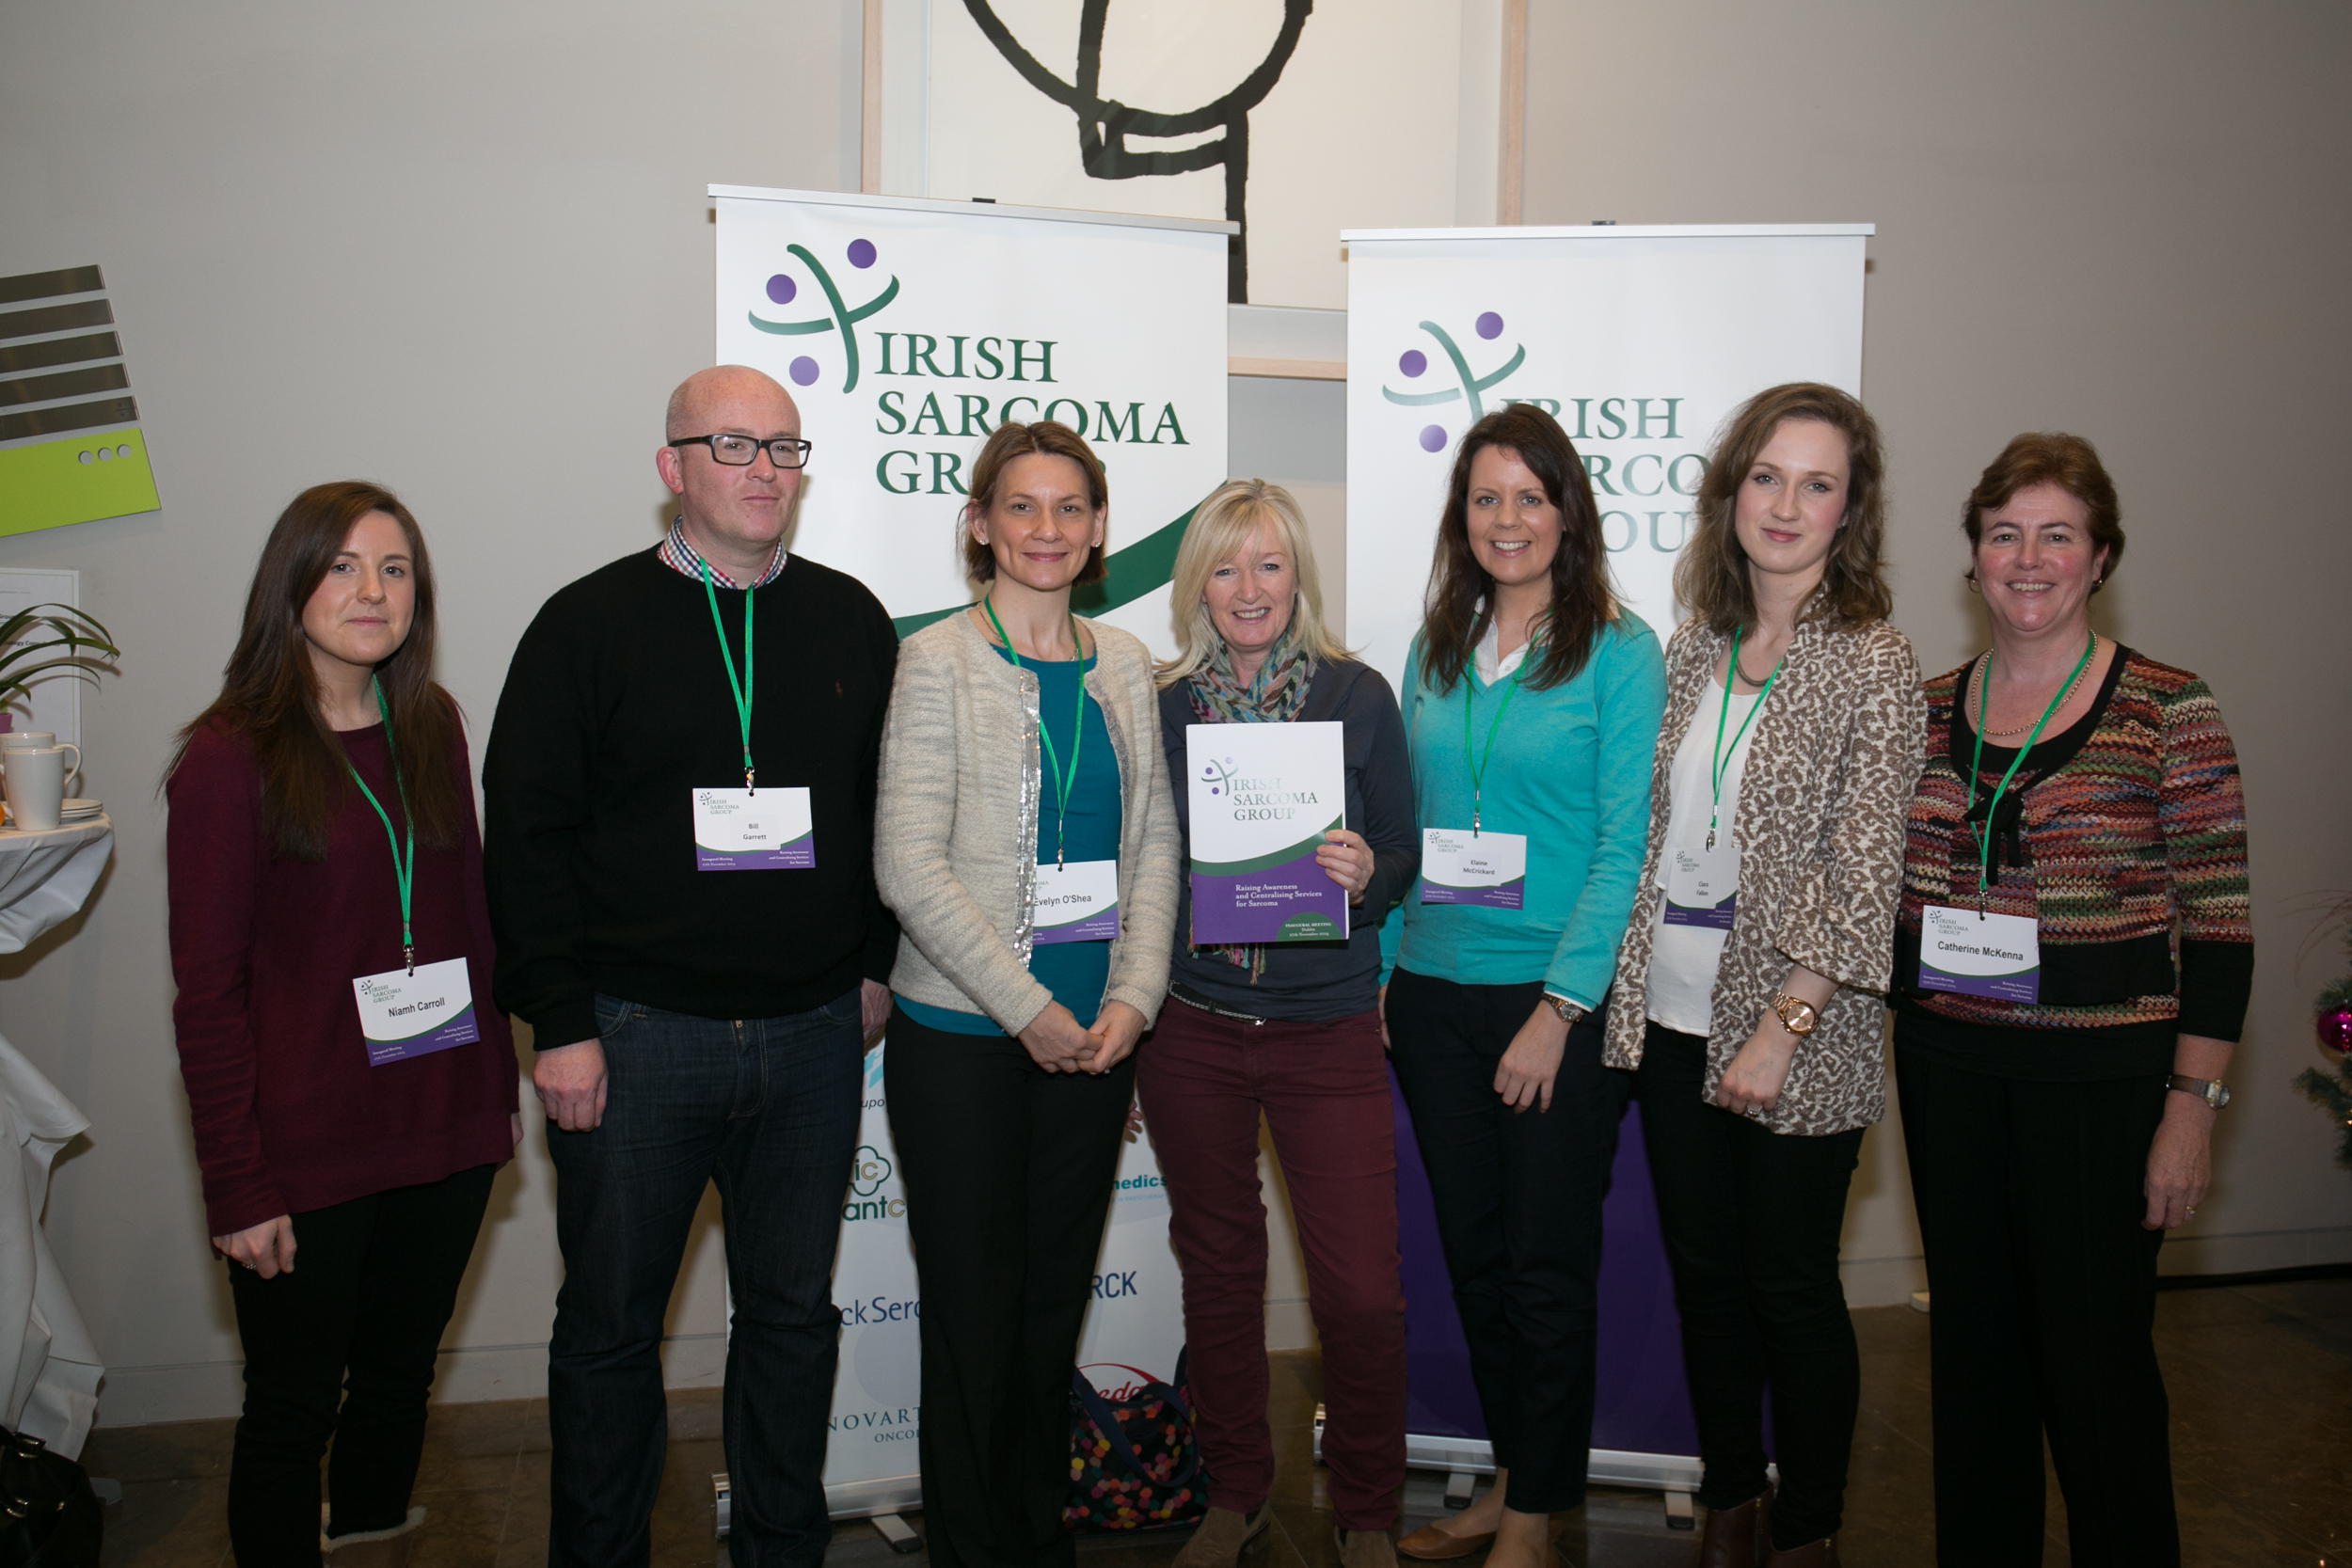 St Luke's Hospital Sarcoma Multidisciplinary Team: Niamh Carroll, Bill Garrett, Evelyn O'Shea, Siobhan Cosgrave, Elaine McCrickard, Ciara Fallon, Catherine McKenna